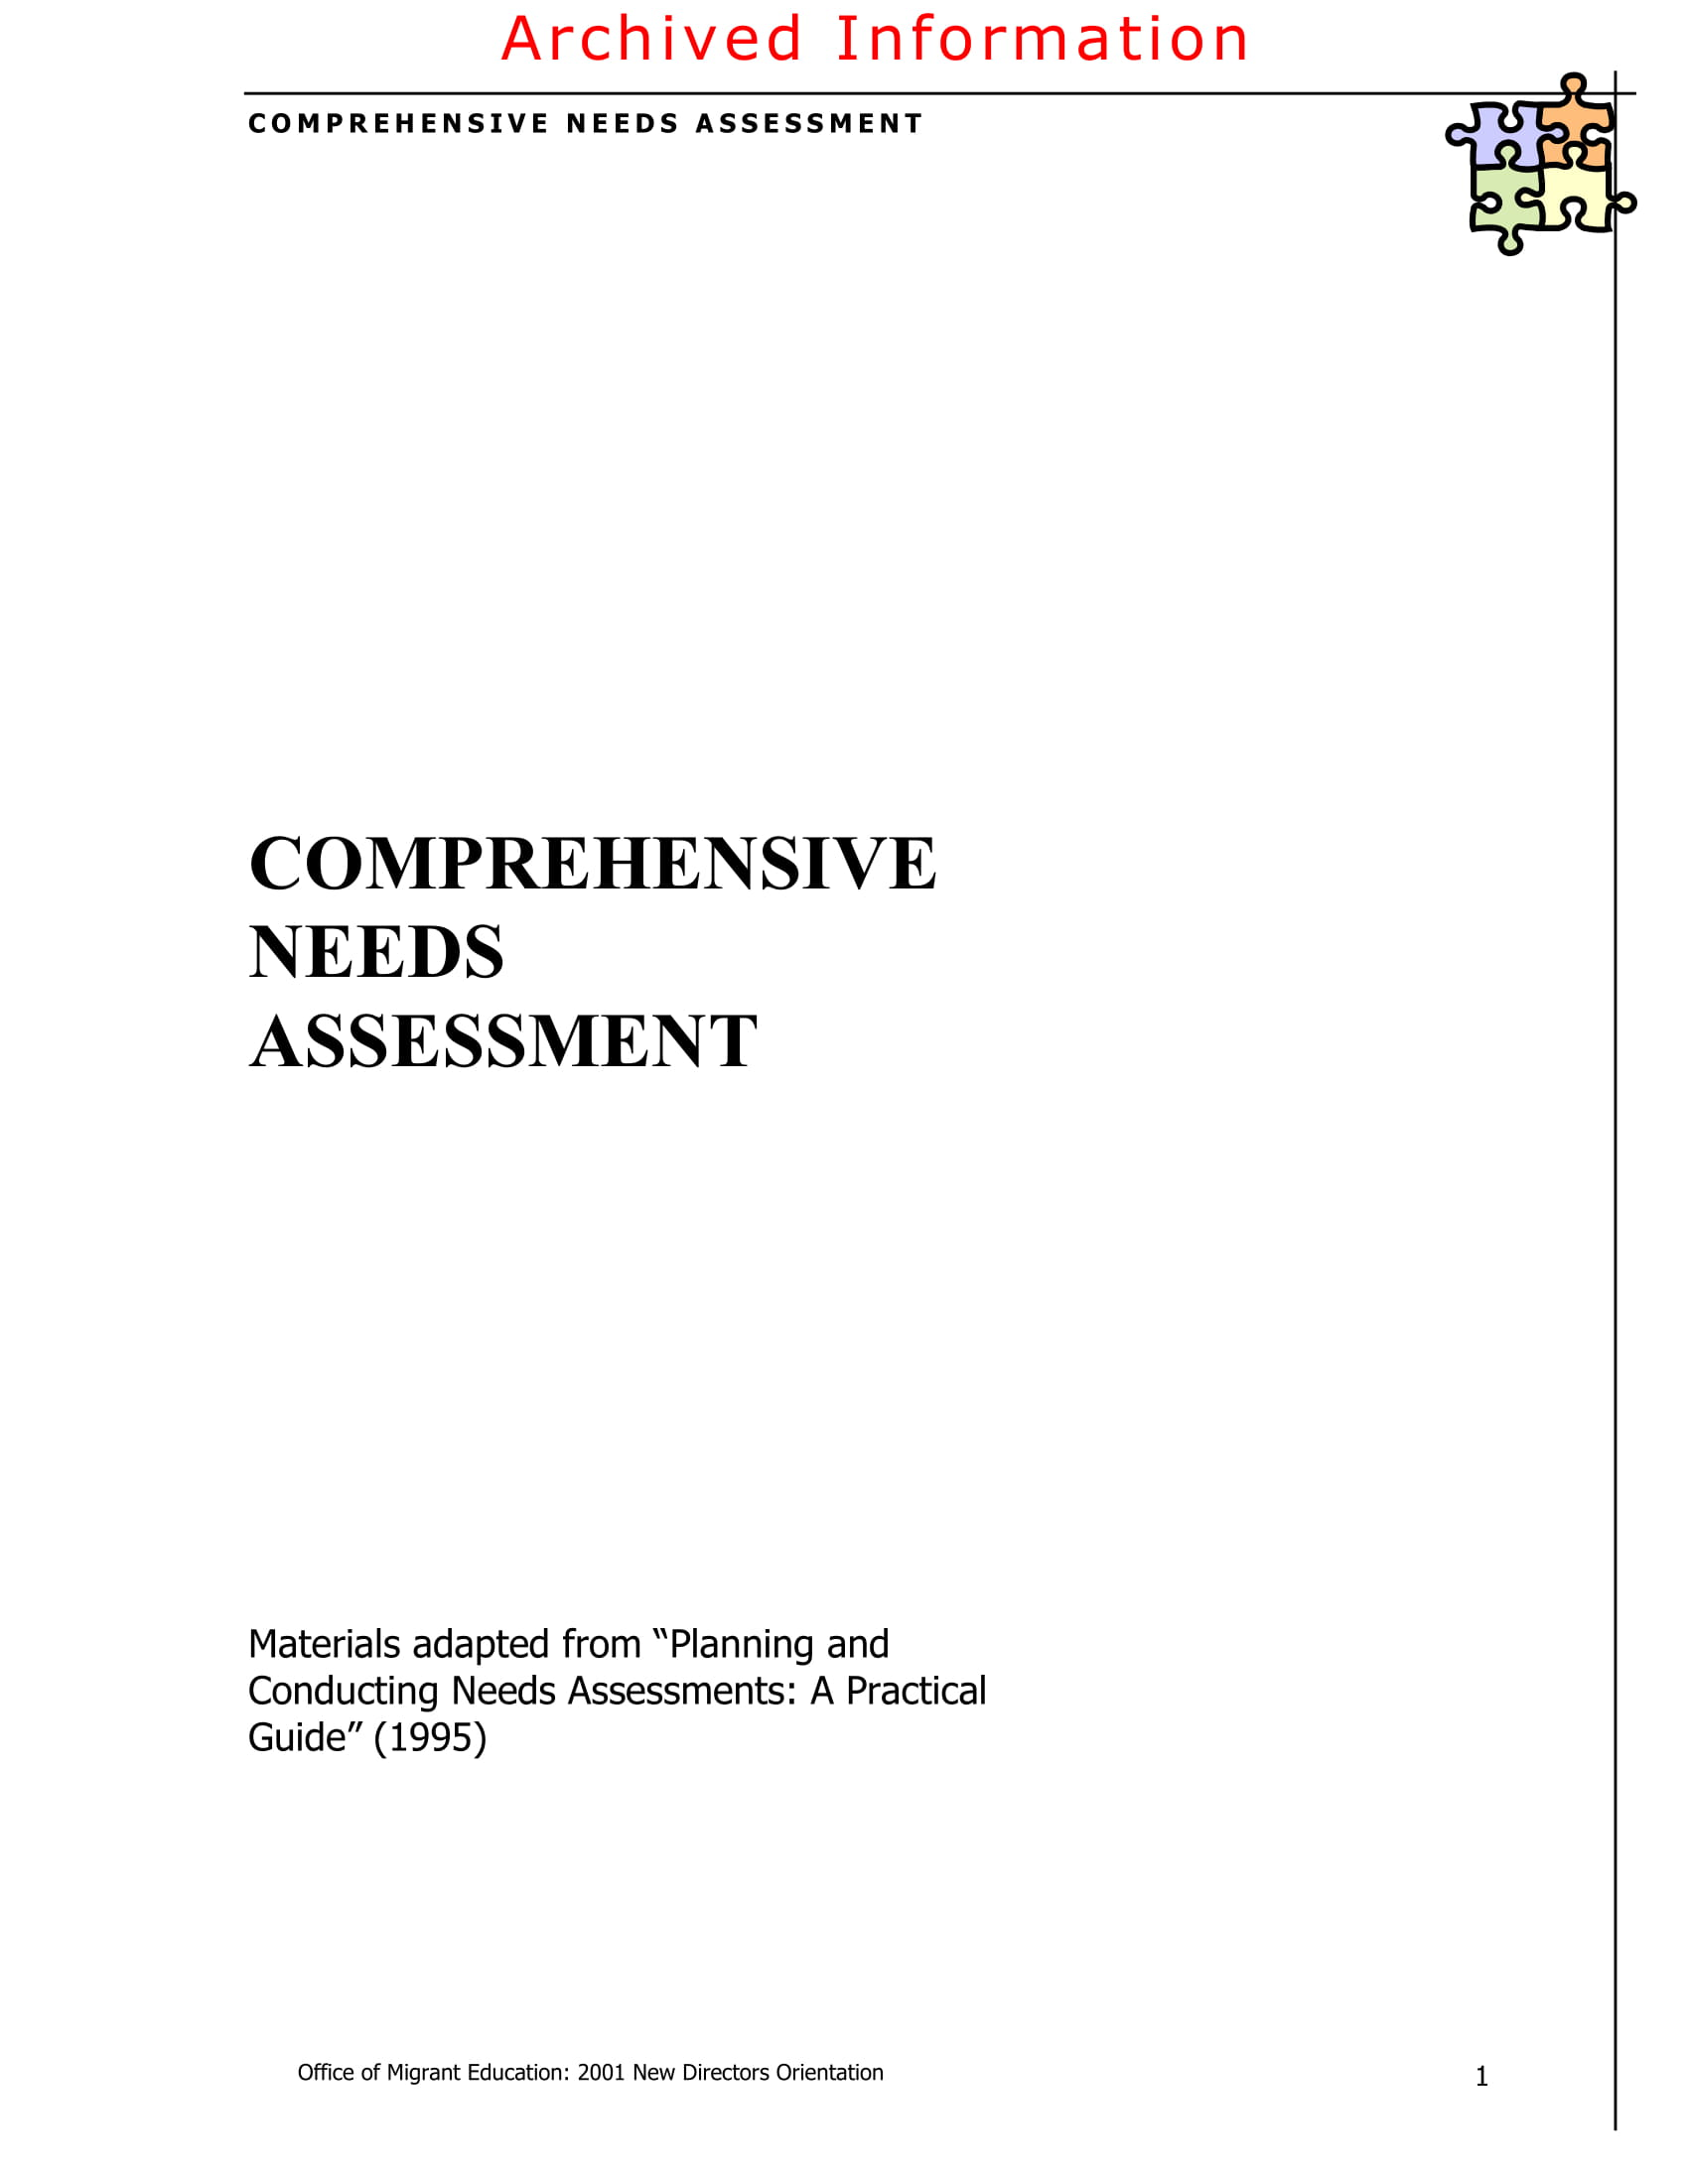 comprehensive needs assessment example 01